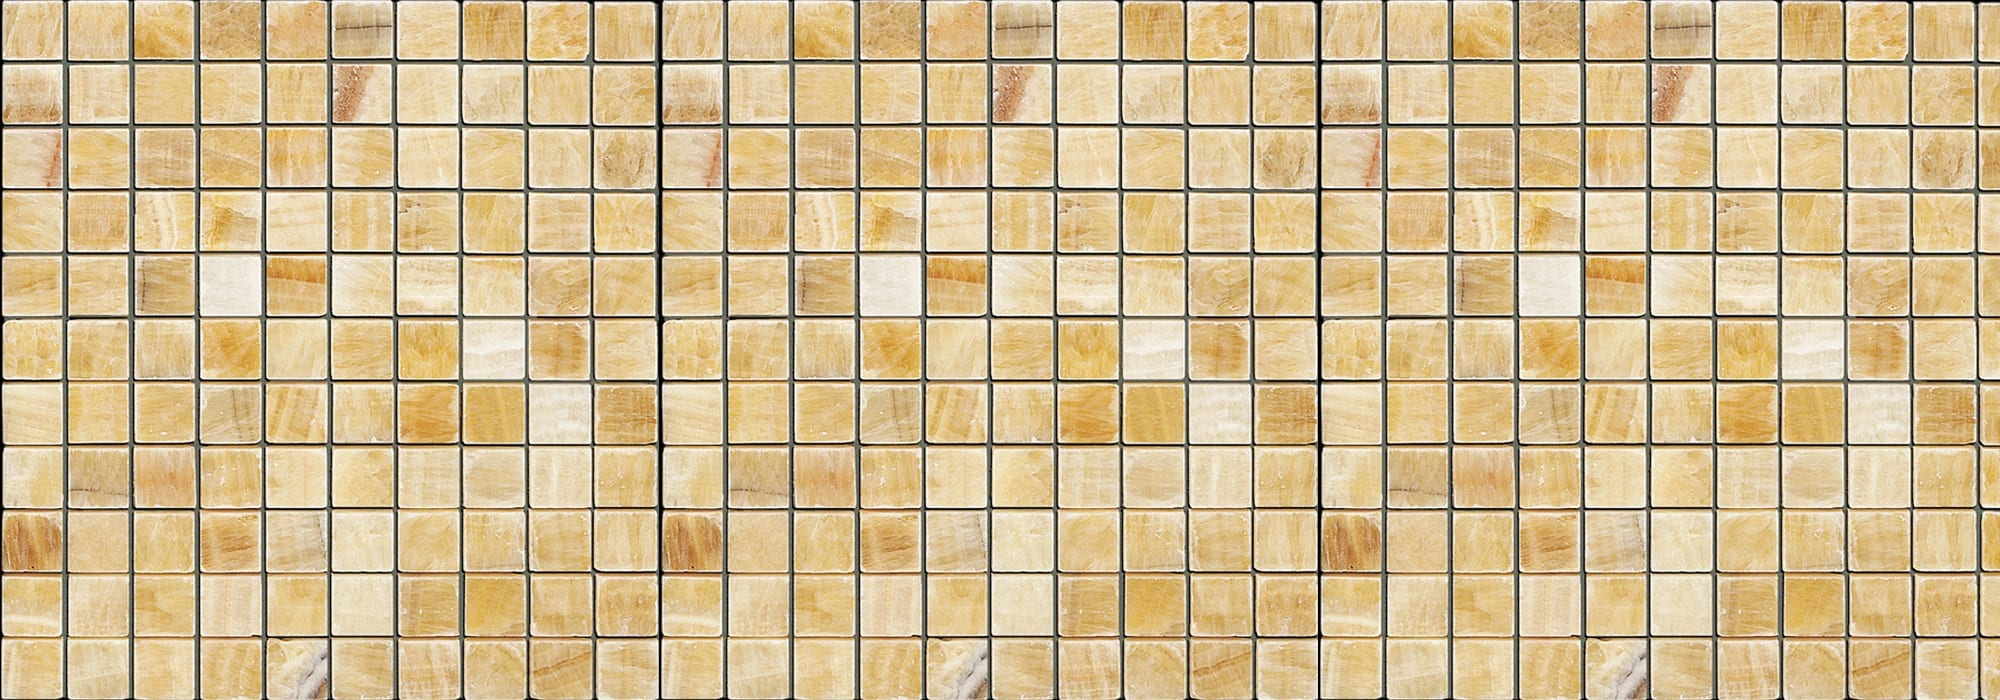 Honey Onyx Stone Mosaic 2.5*2.5 by Milstone